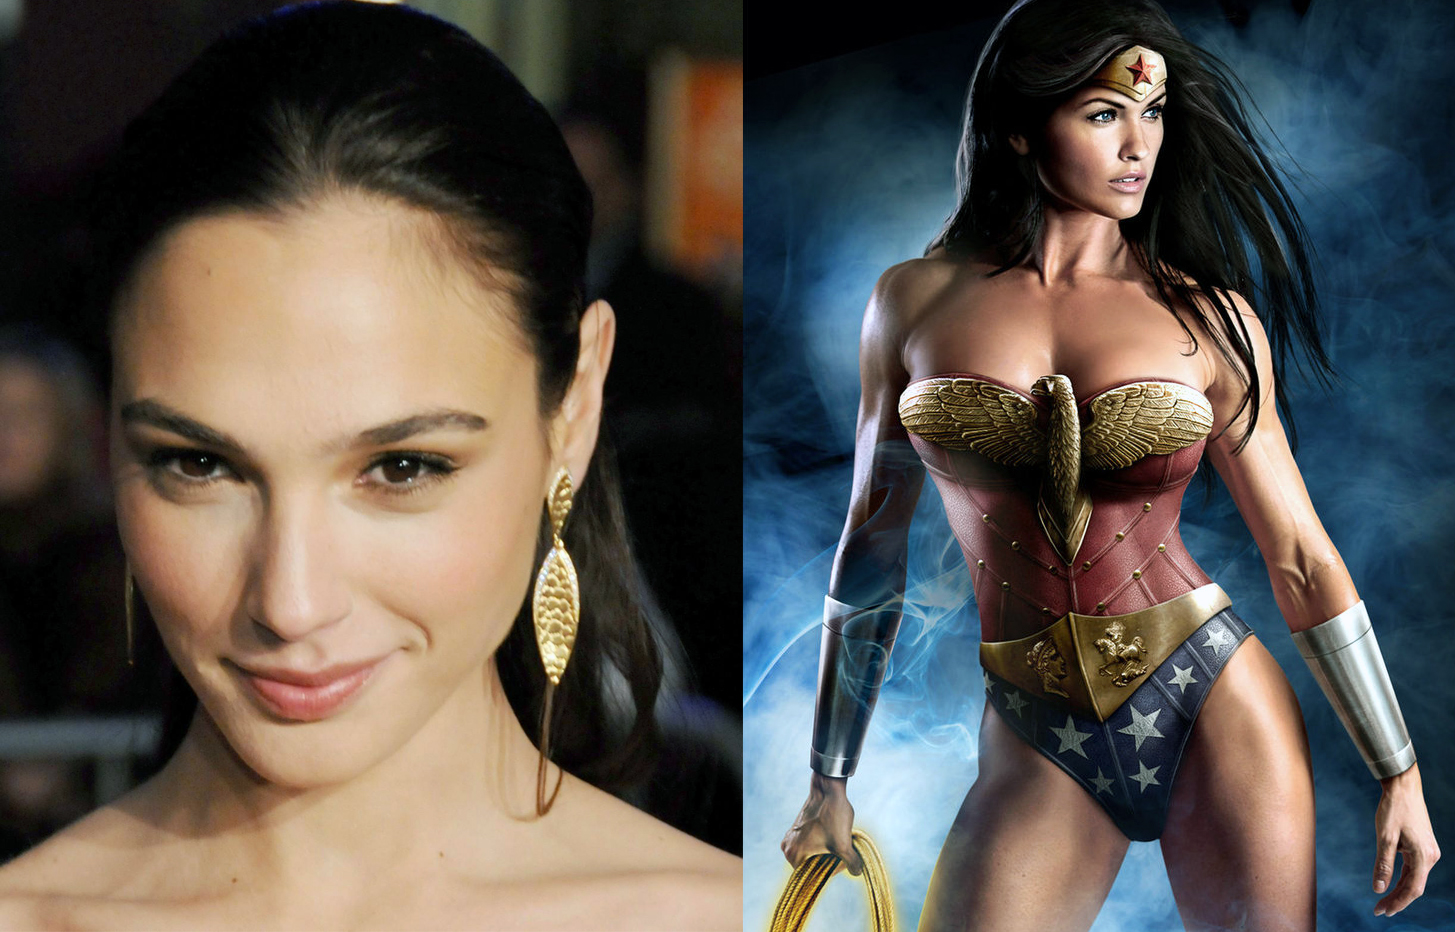 http://upcomingcomicbookmovies.files.wordpress.com/2013/12/wonder_woman_actress_gal_gadot.jpg